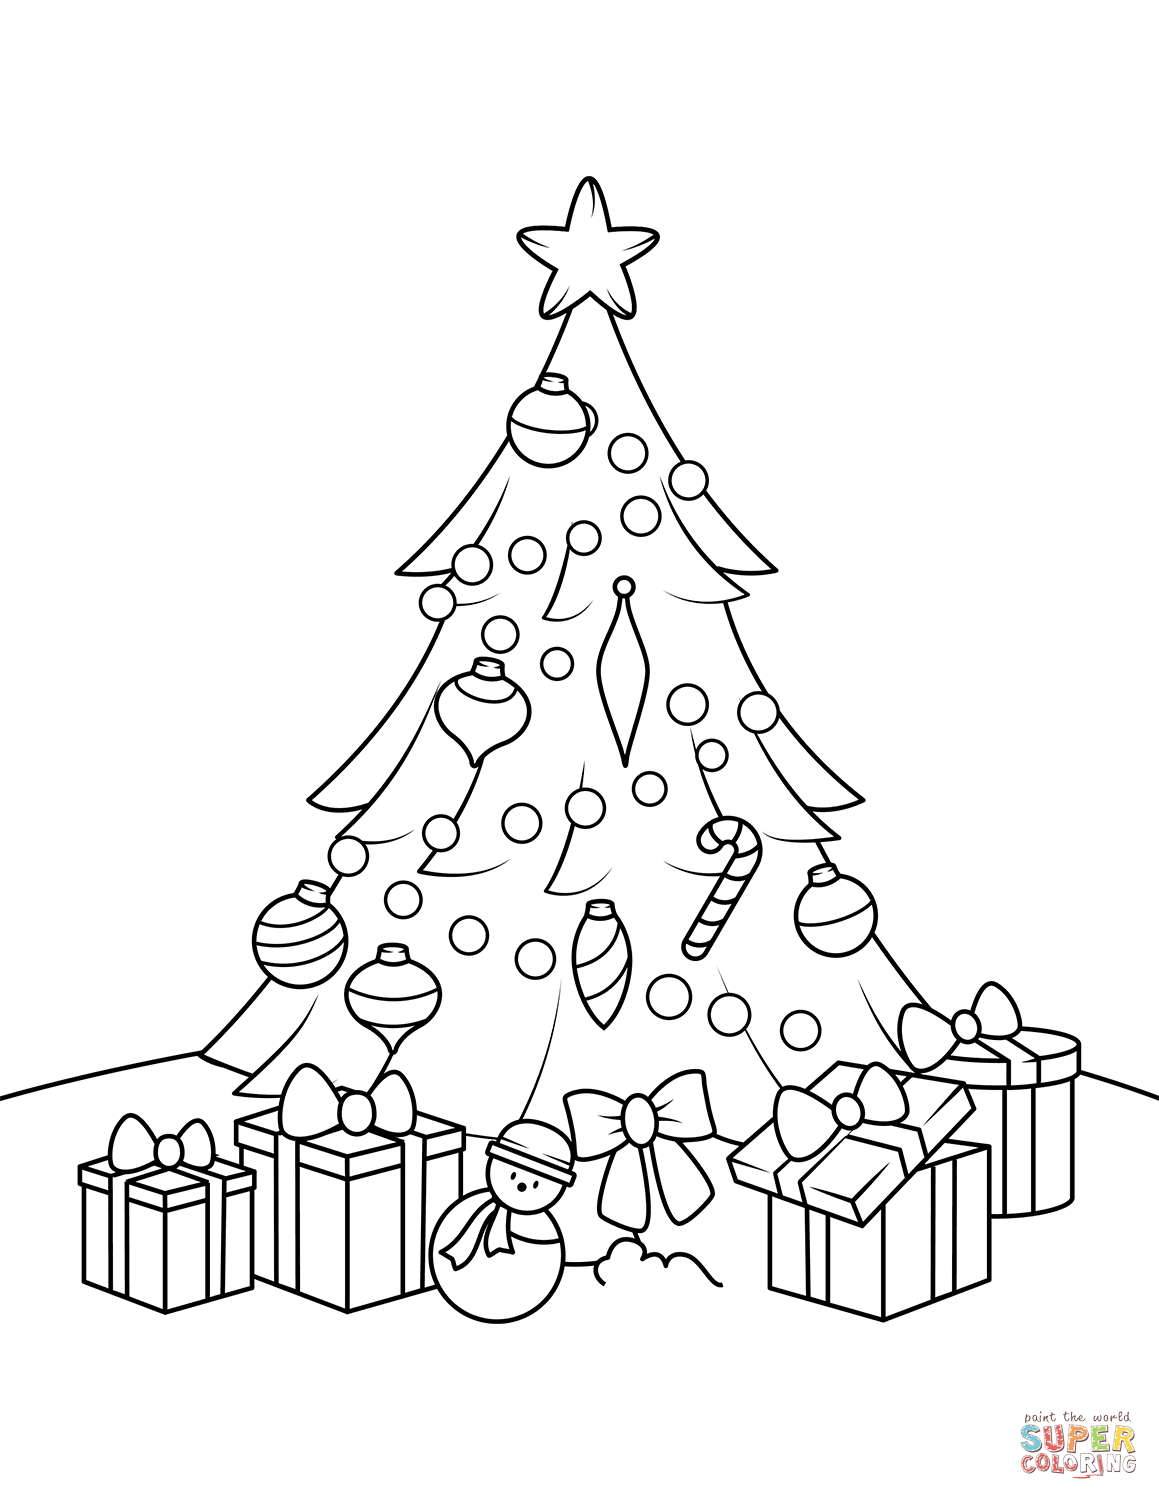 Christmas Tree Drawing Realistic At Getdrawings